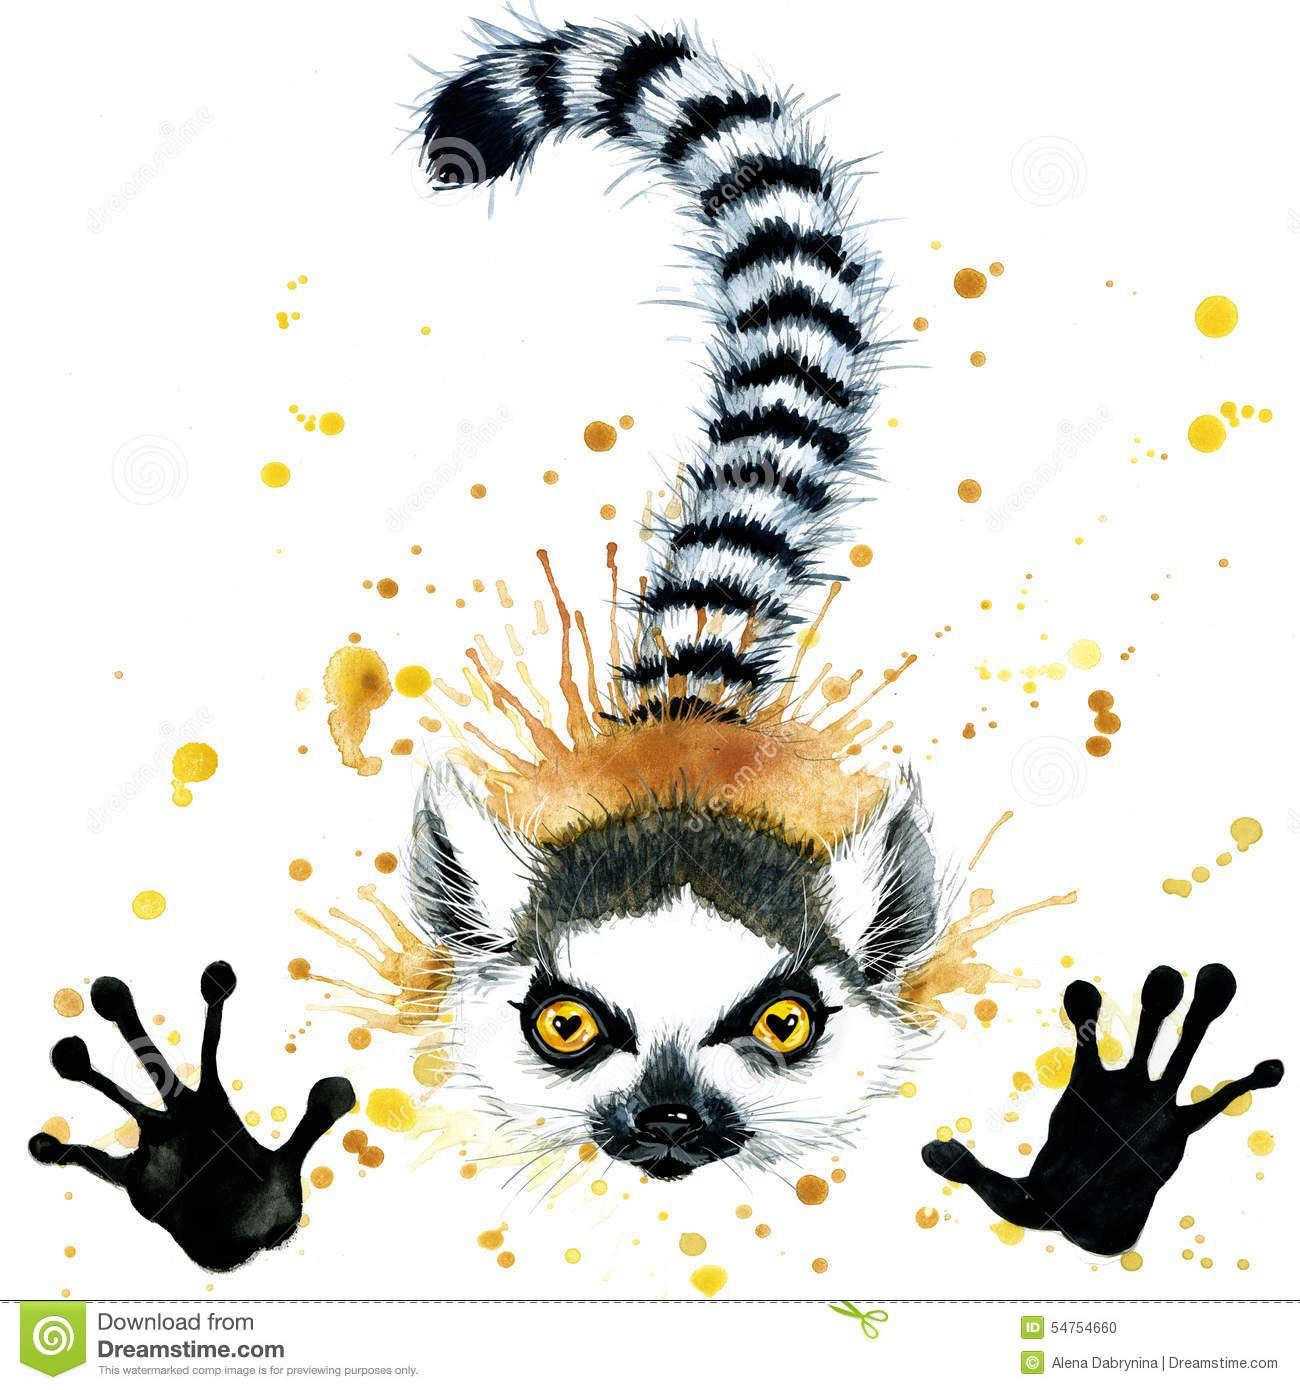 Jessi Lawson Artist I Love The Bright Colors: Lemur Tattoo - Google Search